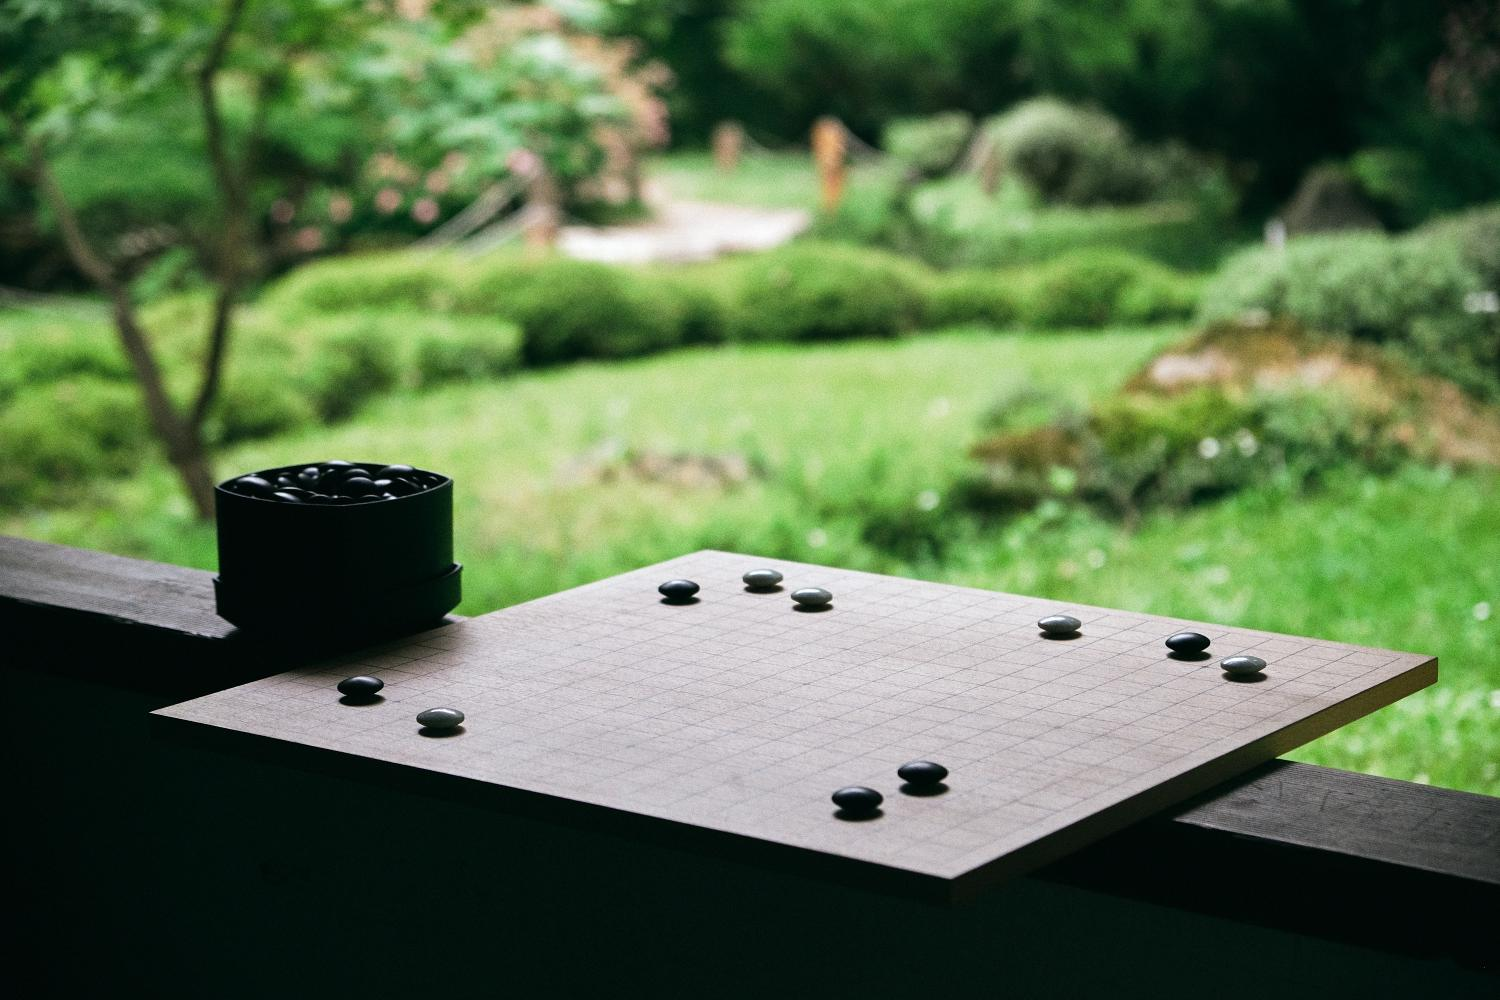 The Game of Go and Its Help for Thinking Ability - Results of Scientific Research